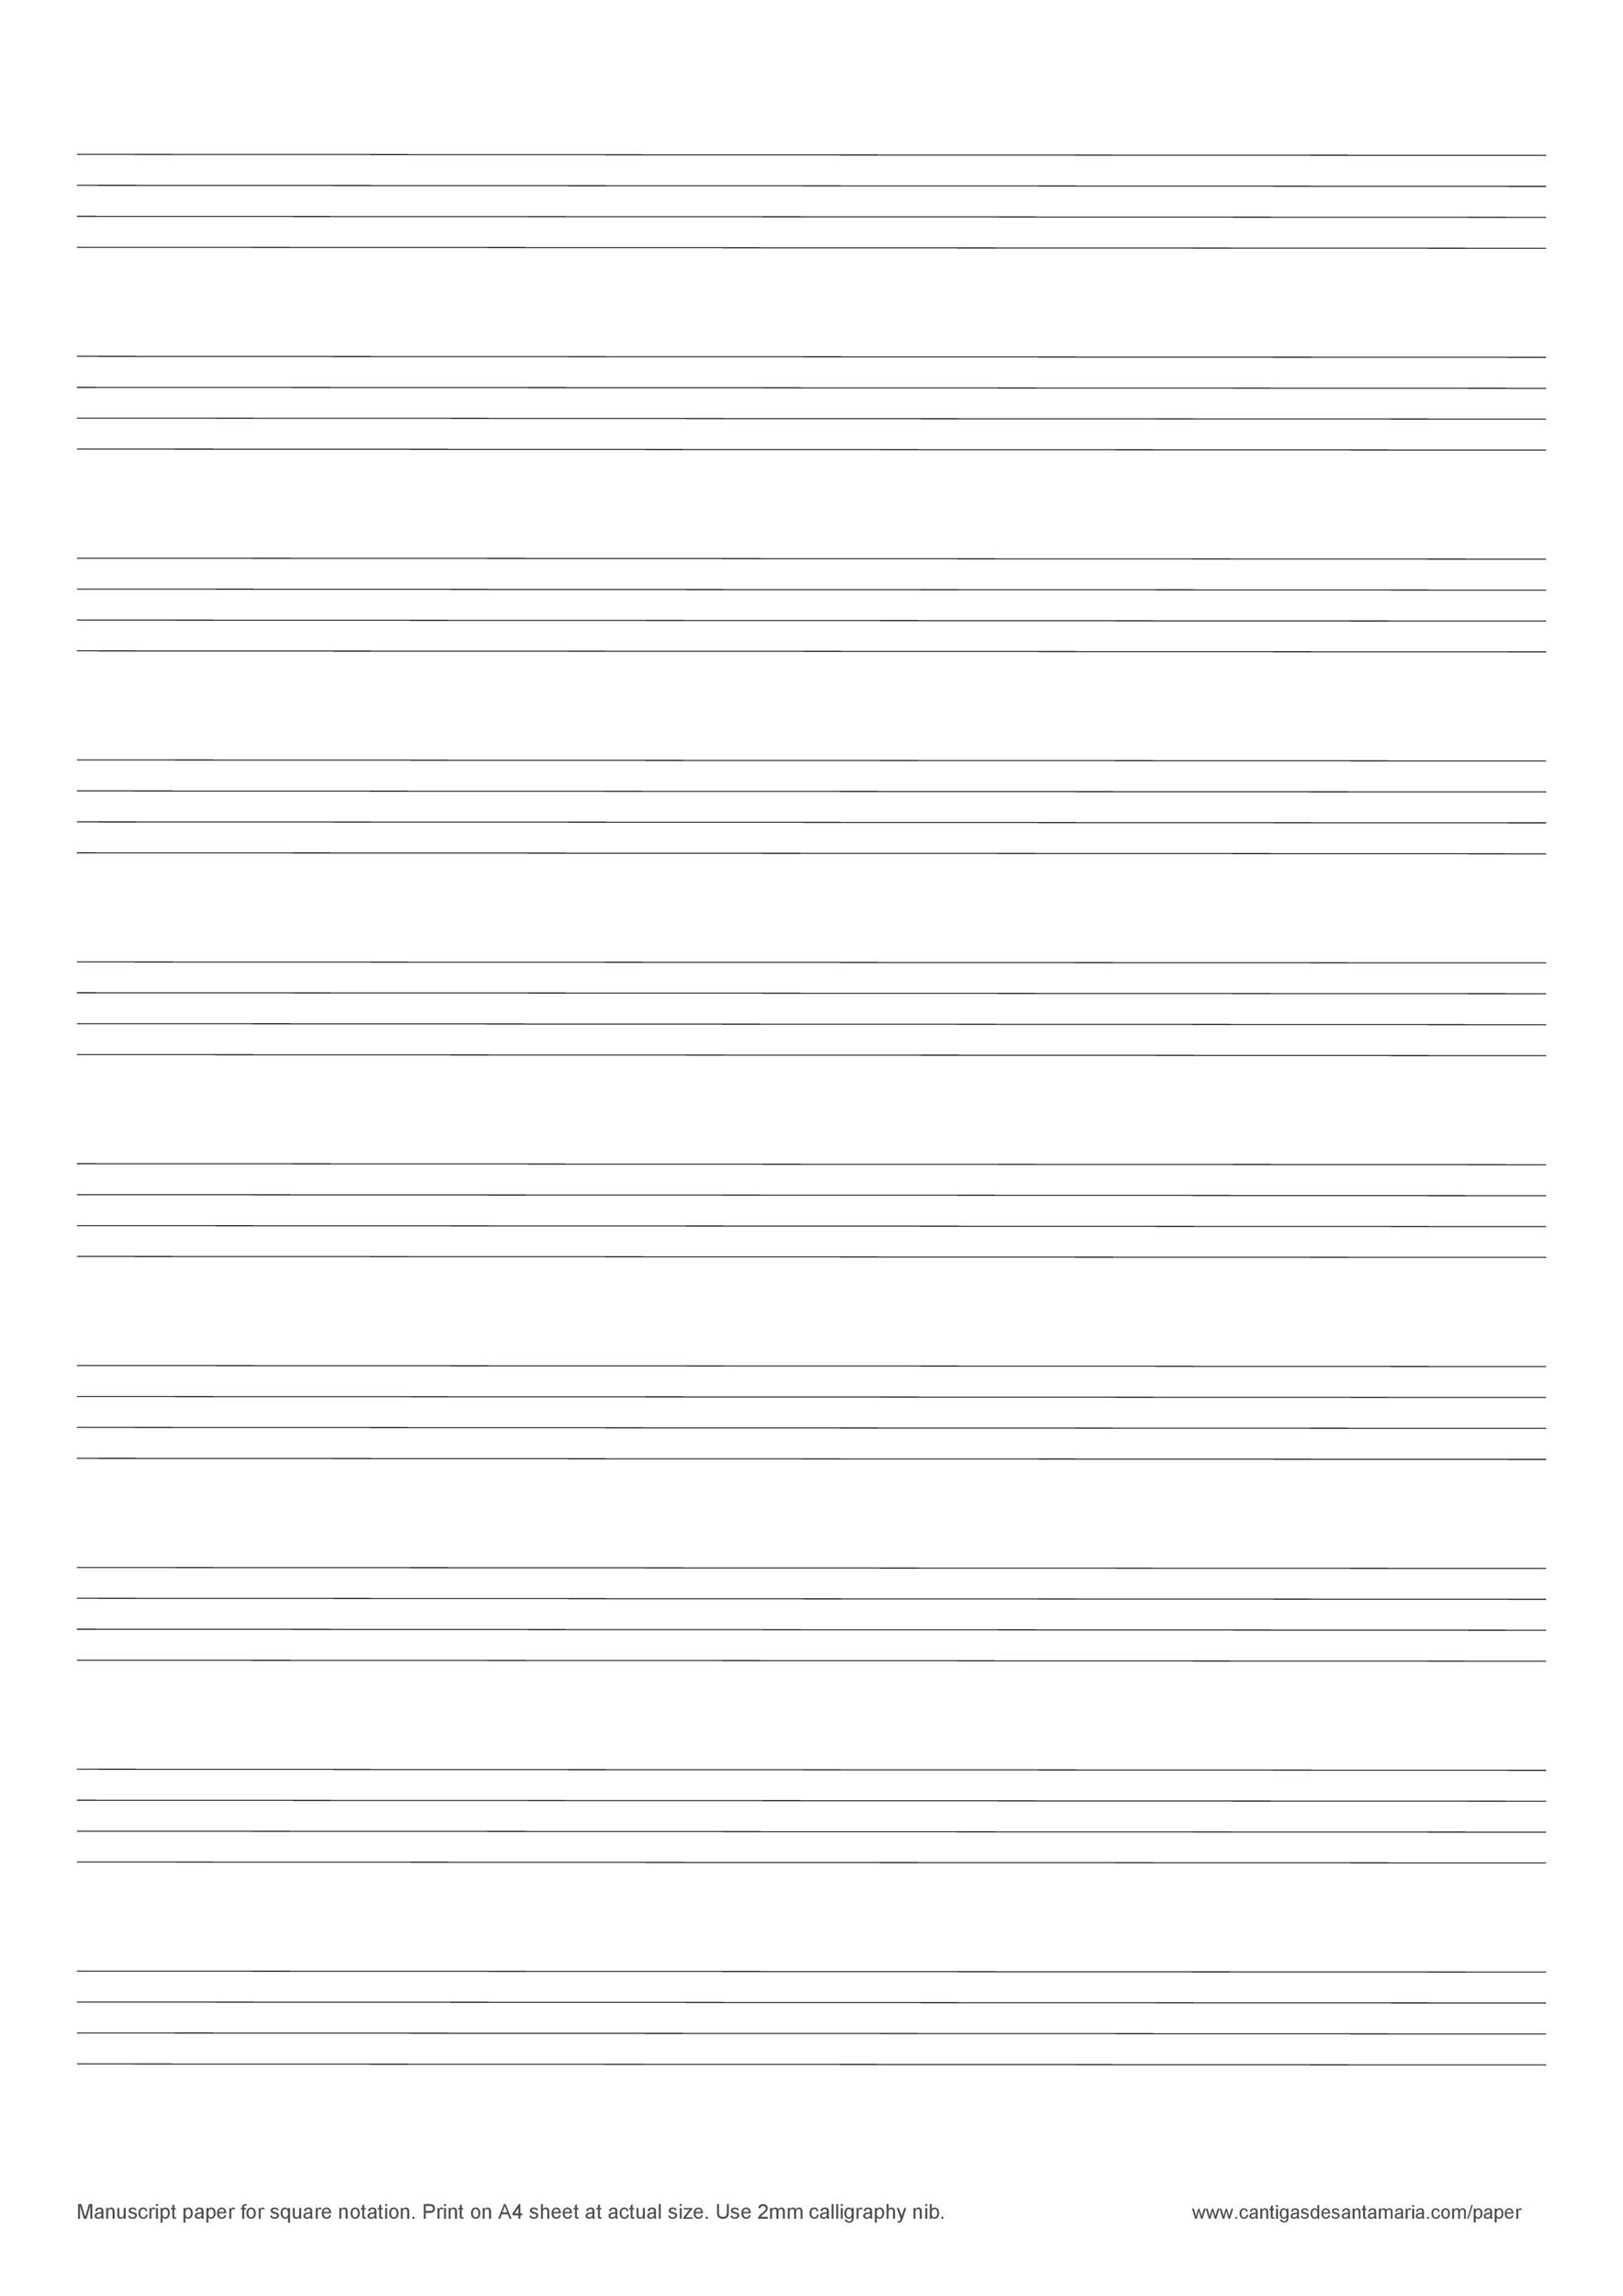 Free lined paper template 27